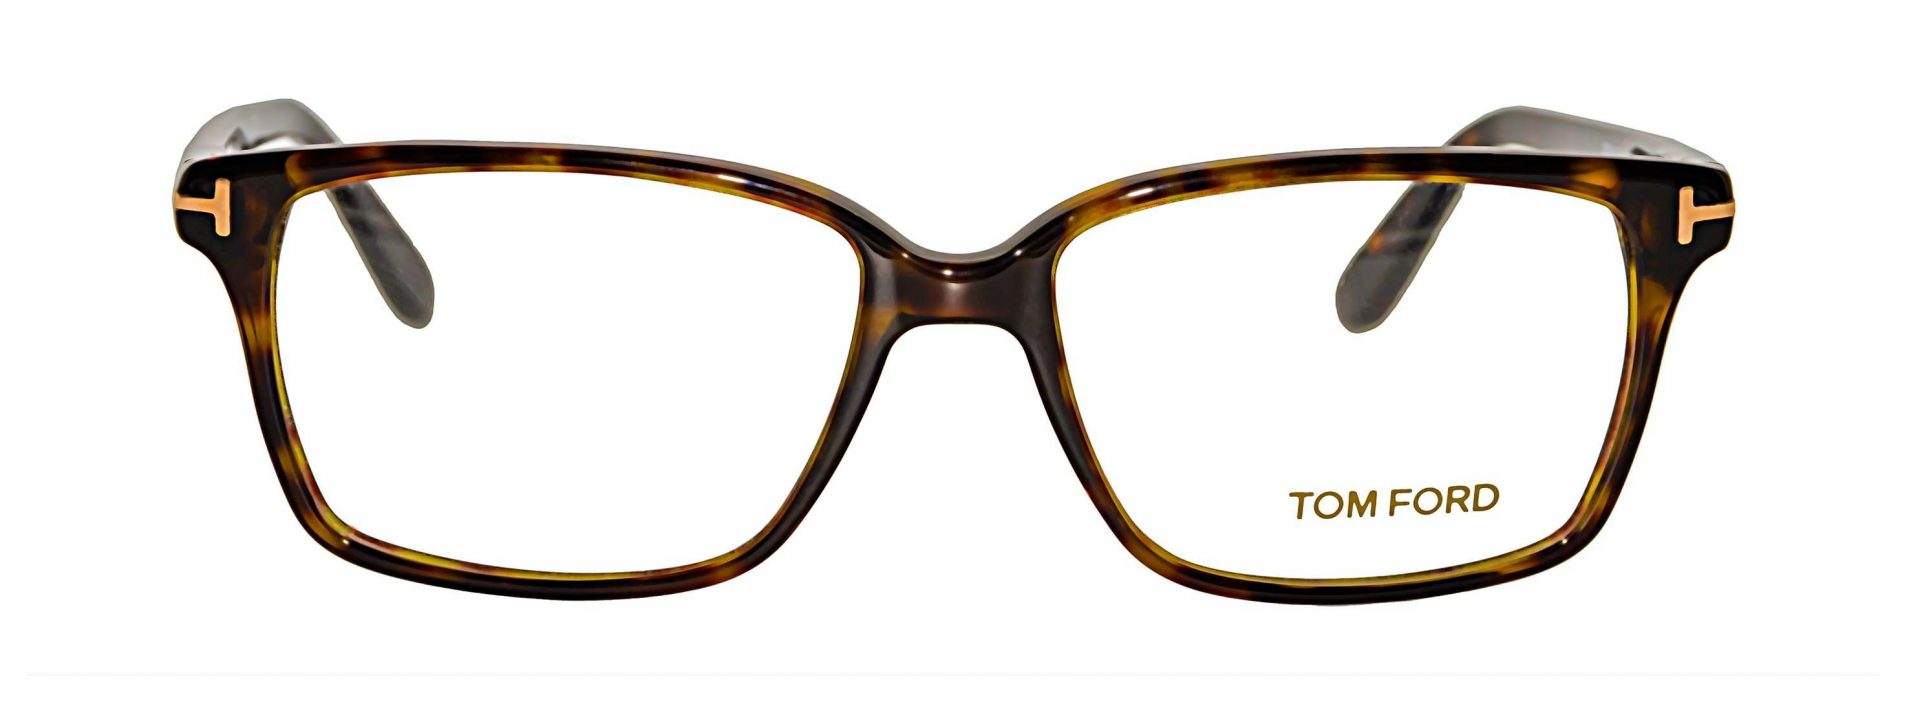 Tom Ford spectacles 5311 52 1 2970x1100 1